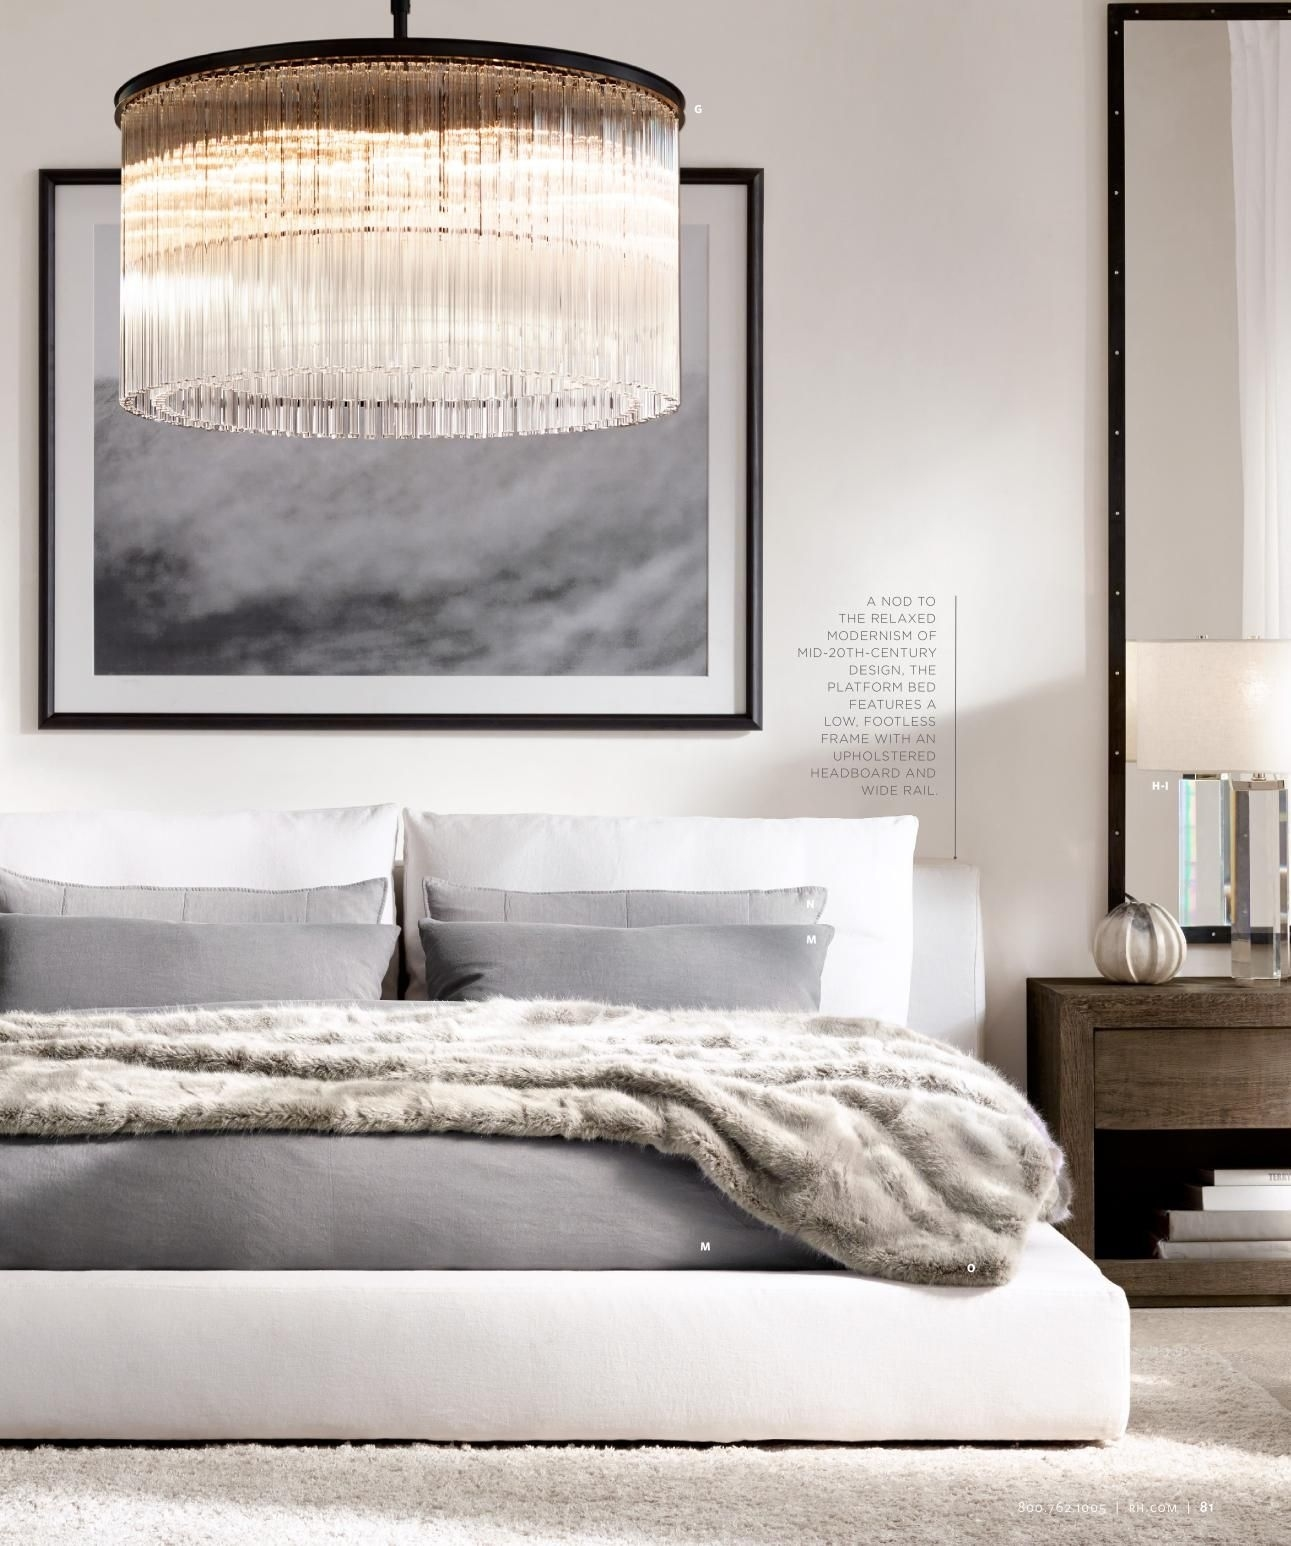 Relaxed Modern Bedroom Design #homedecorideas #interiordesign intended for How to Decorate Modern Bedroom with Lighting Design Ideas - modern bedroom with lighting